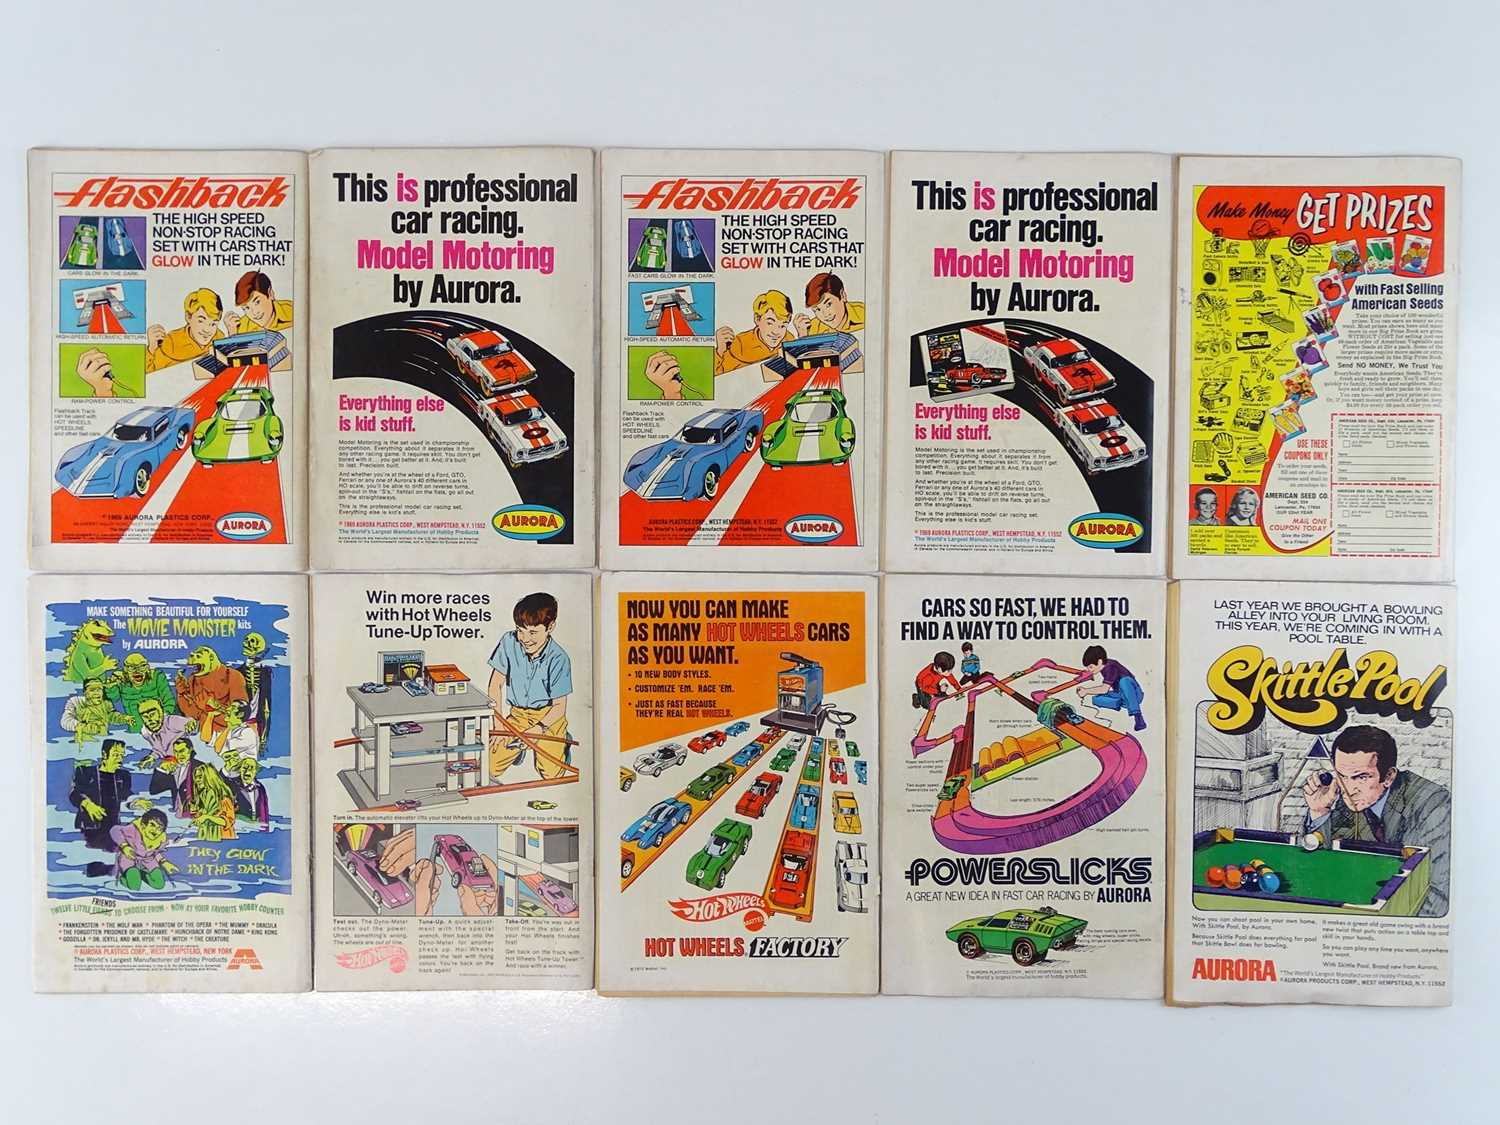 SUPERMAN #221, 222, 223, 224, 225, 226, 228, 229, 230, 232 - (10 in Lot) - (1969/70 - DC - UK - Image 2 of 2